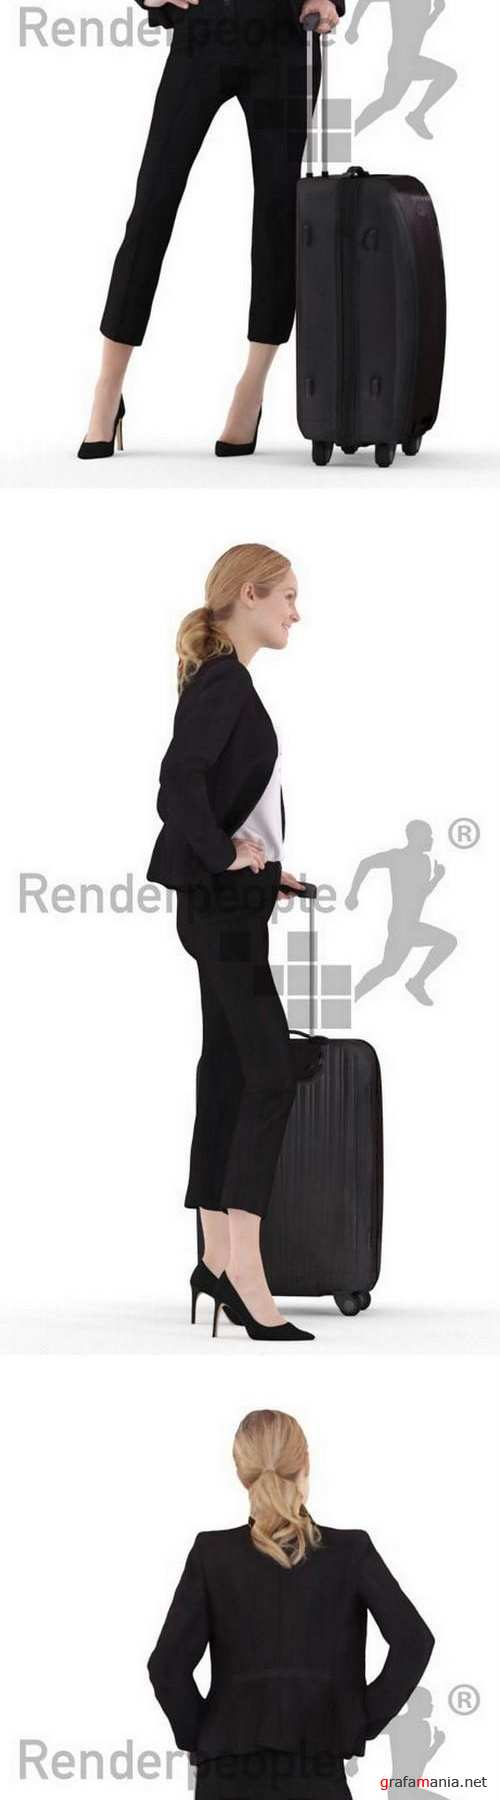 Business lady with luggage Full Body scanned 3d model